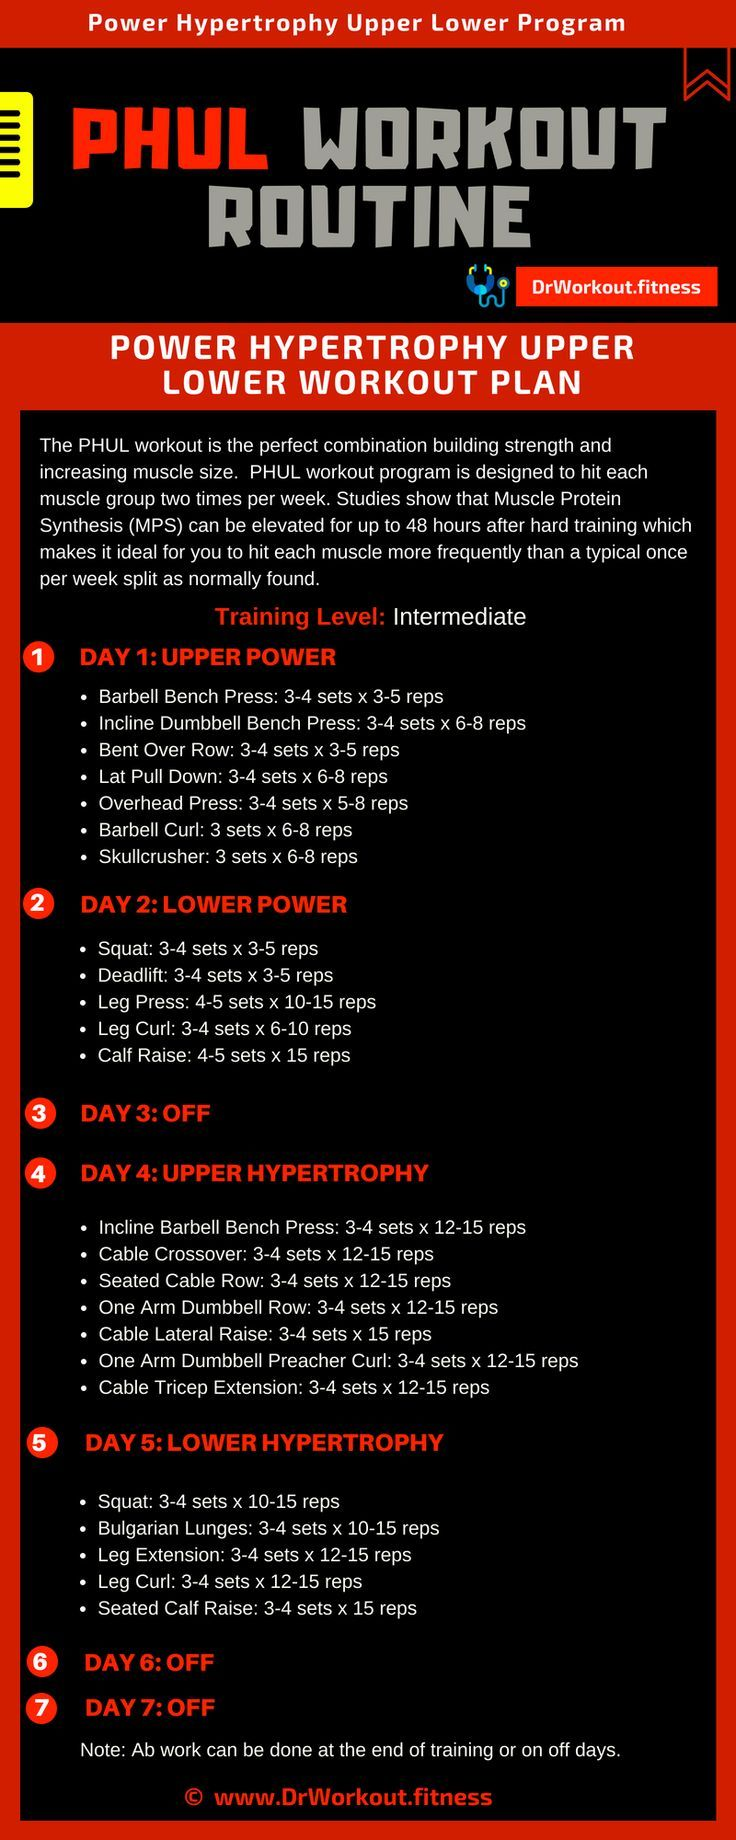 PHUL Workout Routine | Power Hypertrophy Upper Lower Workout